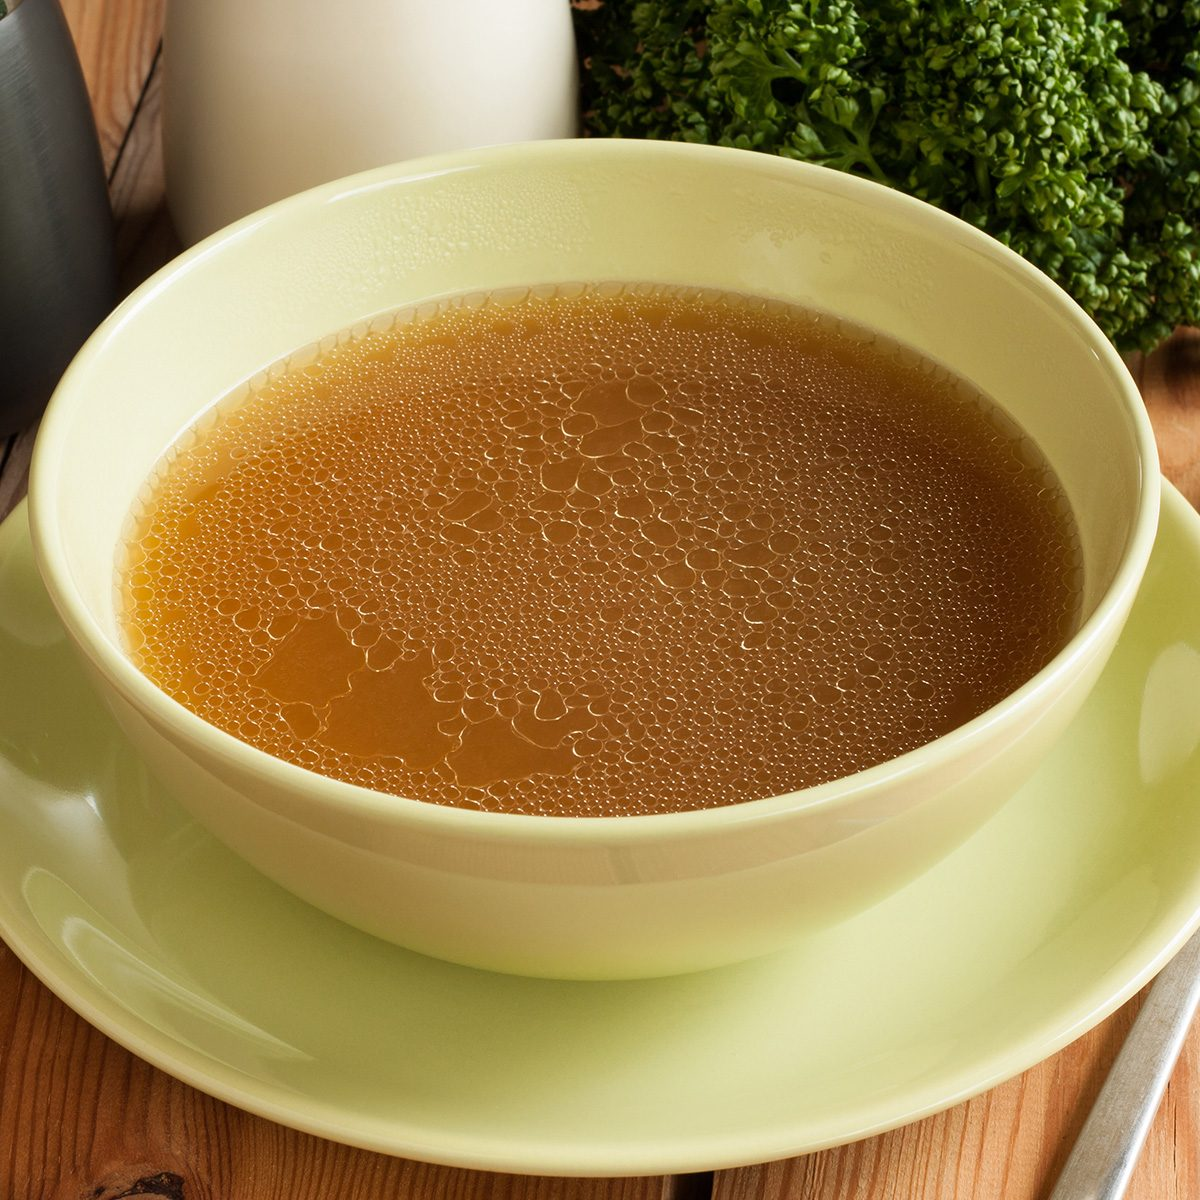 Bone broth made from beef, served in a green soup bowl